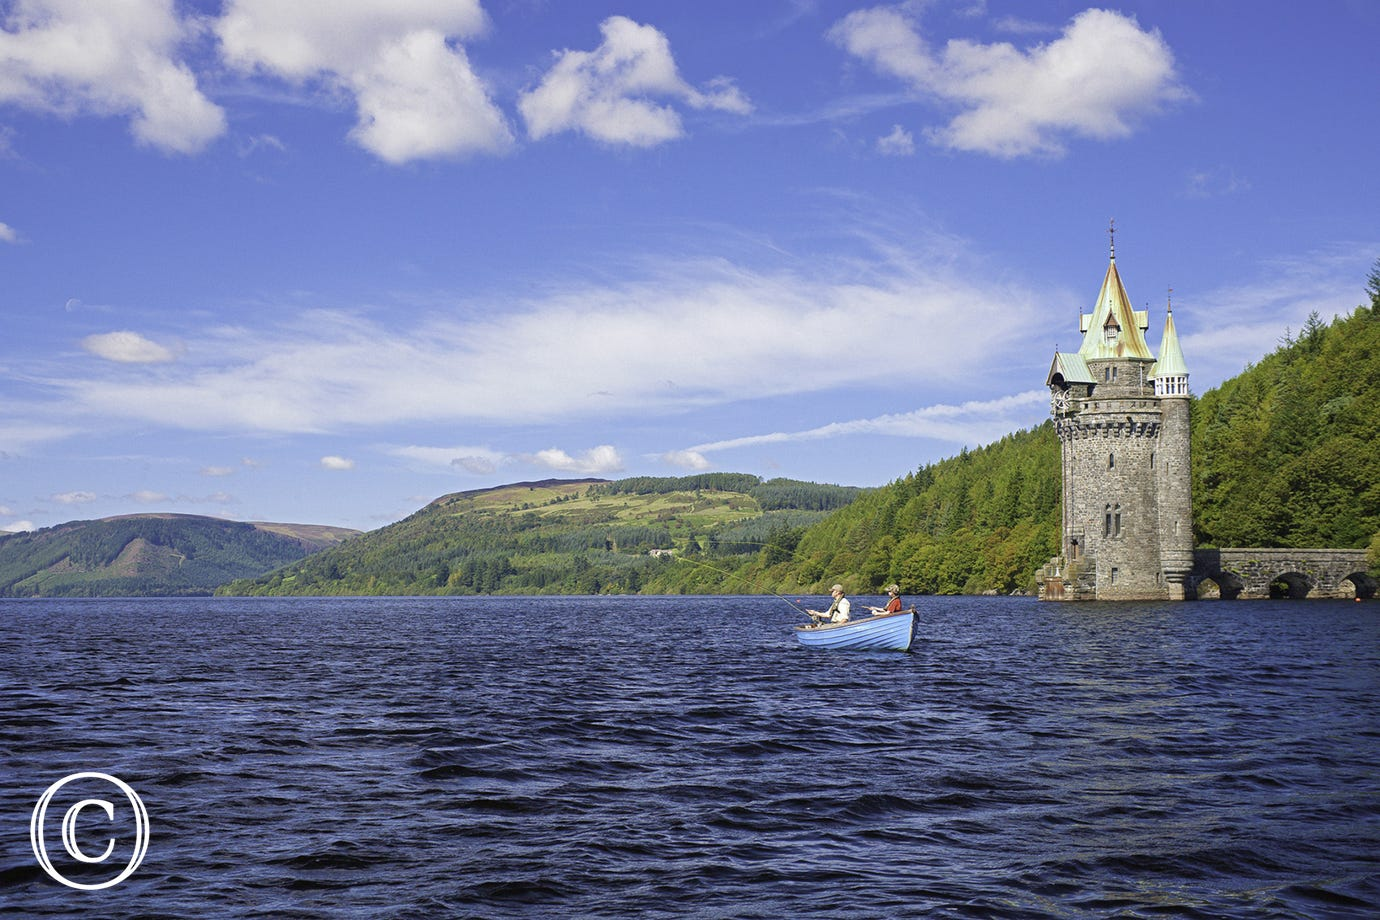 Enjoy a relaxing day fishing at Lake Vyrnwy - or walking or cycling around its shores